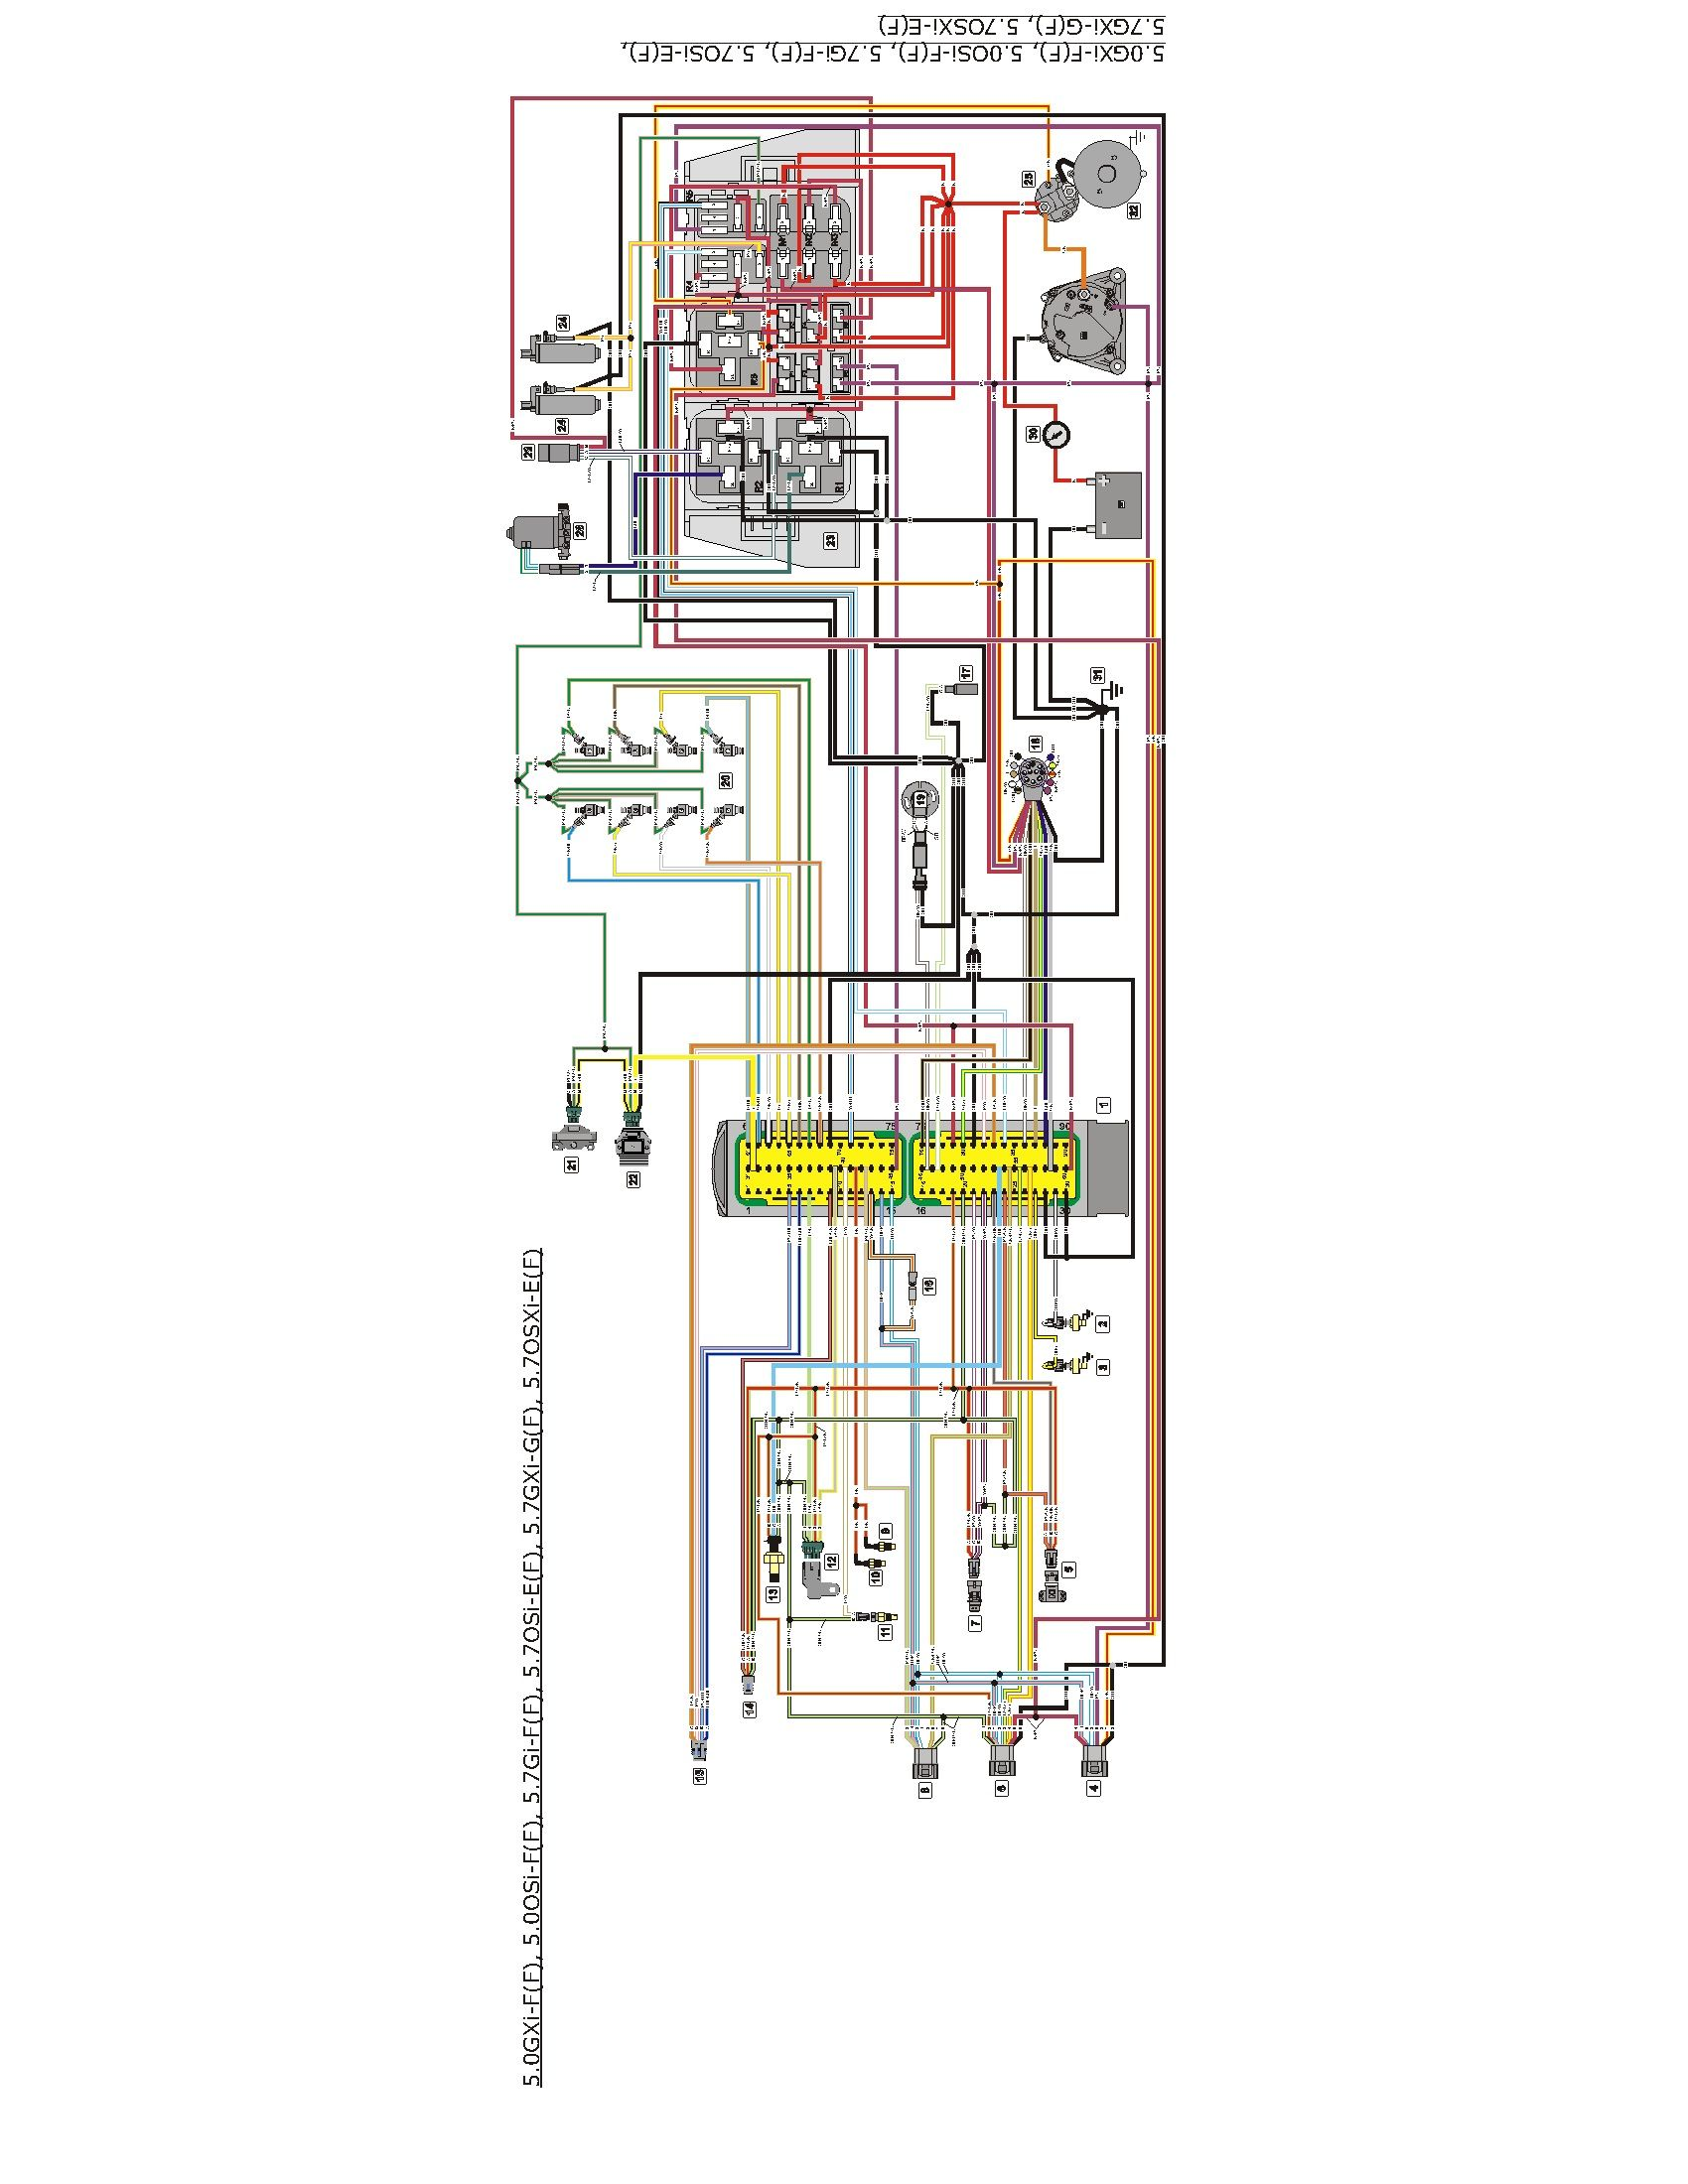 38e0106861e0fe47e508530985b32839 volvo penta 5 7 engine wiring diagram yate pinterest volvo  at pacquiaovsvargaslive.co